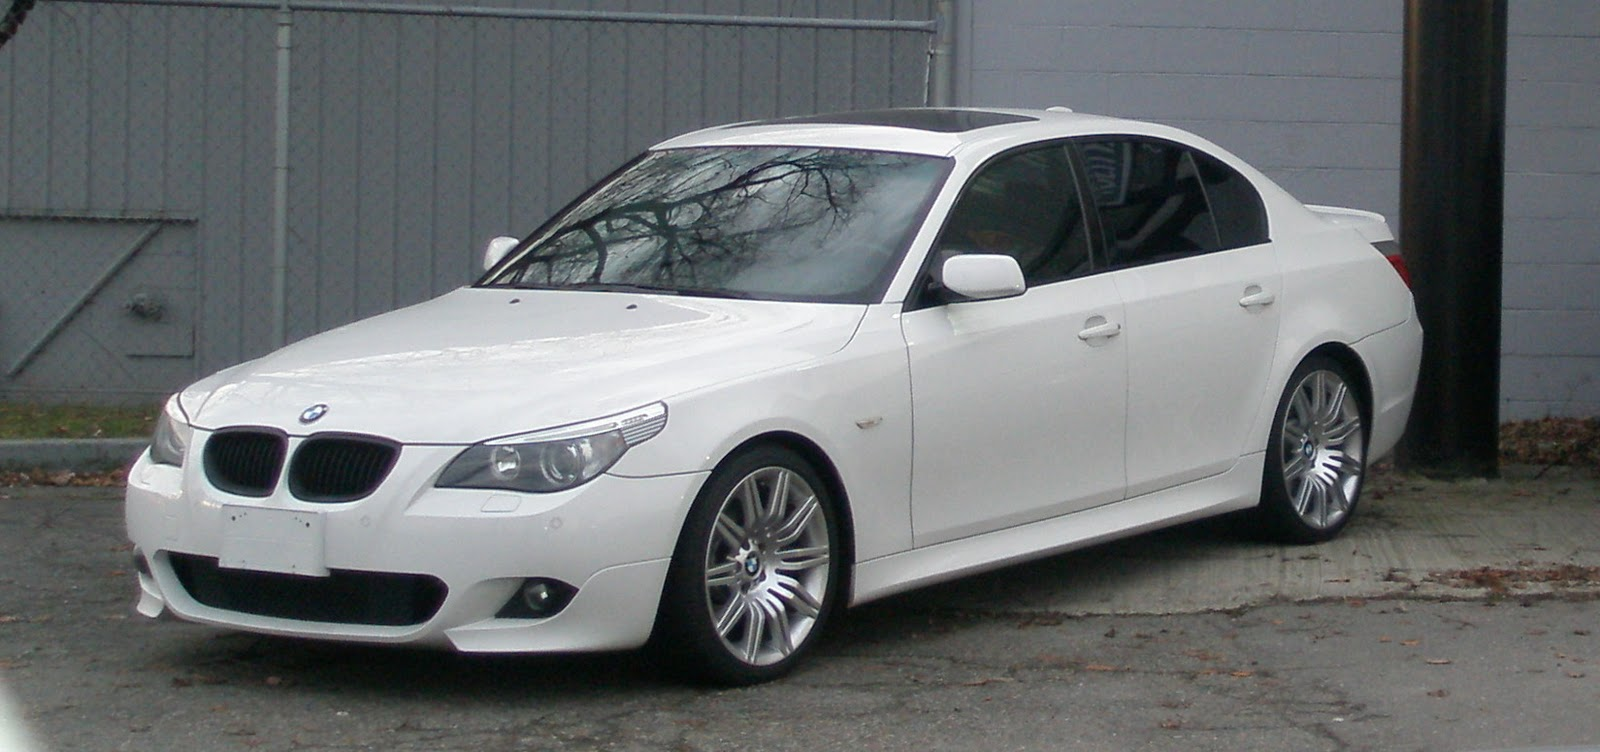 which car do i buy? 550i 6-manual or m5-auto-manual??